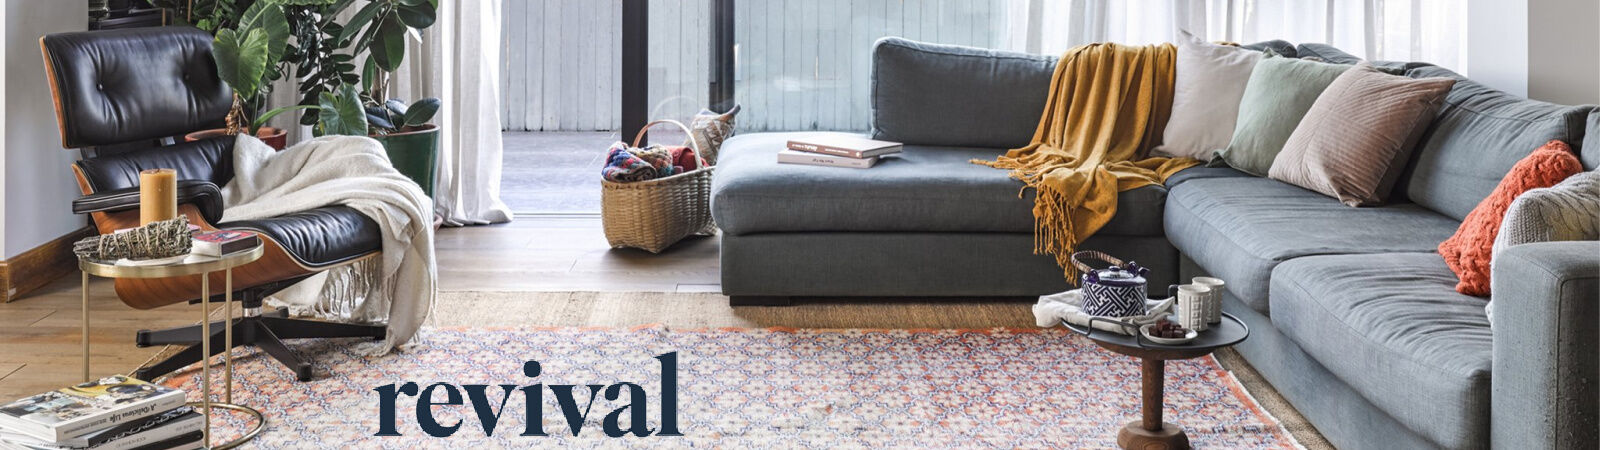 Revival Rugs - Handmade, One of a Kind Rugs and Carpets